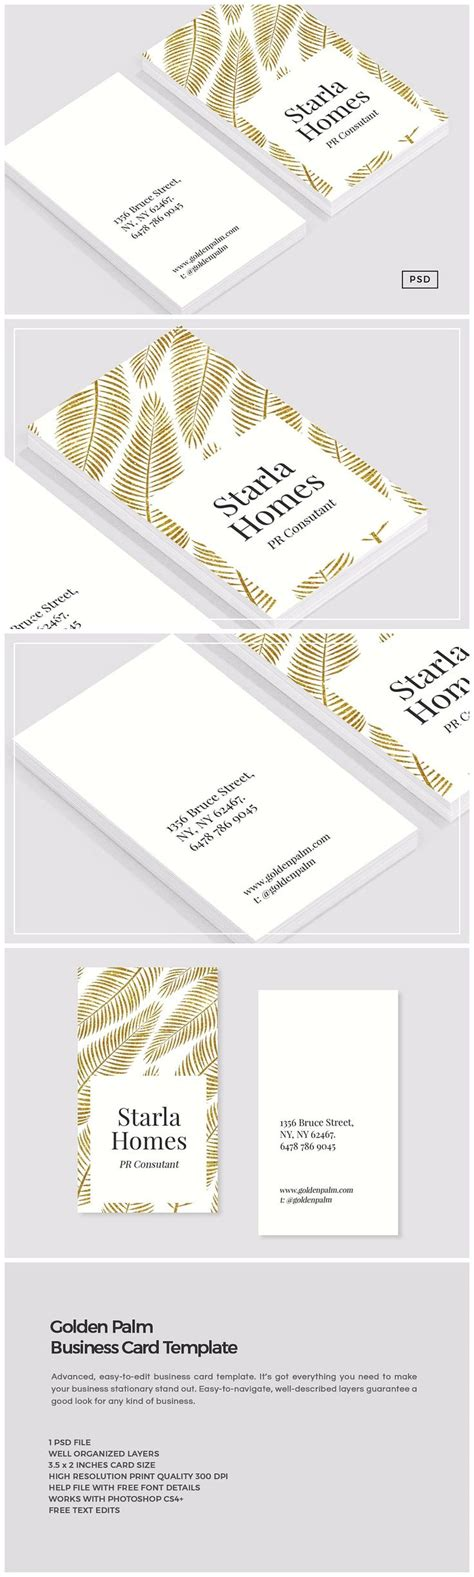 printed business card template how can i make business cards at home for free free